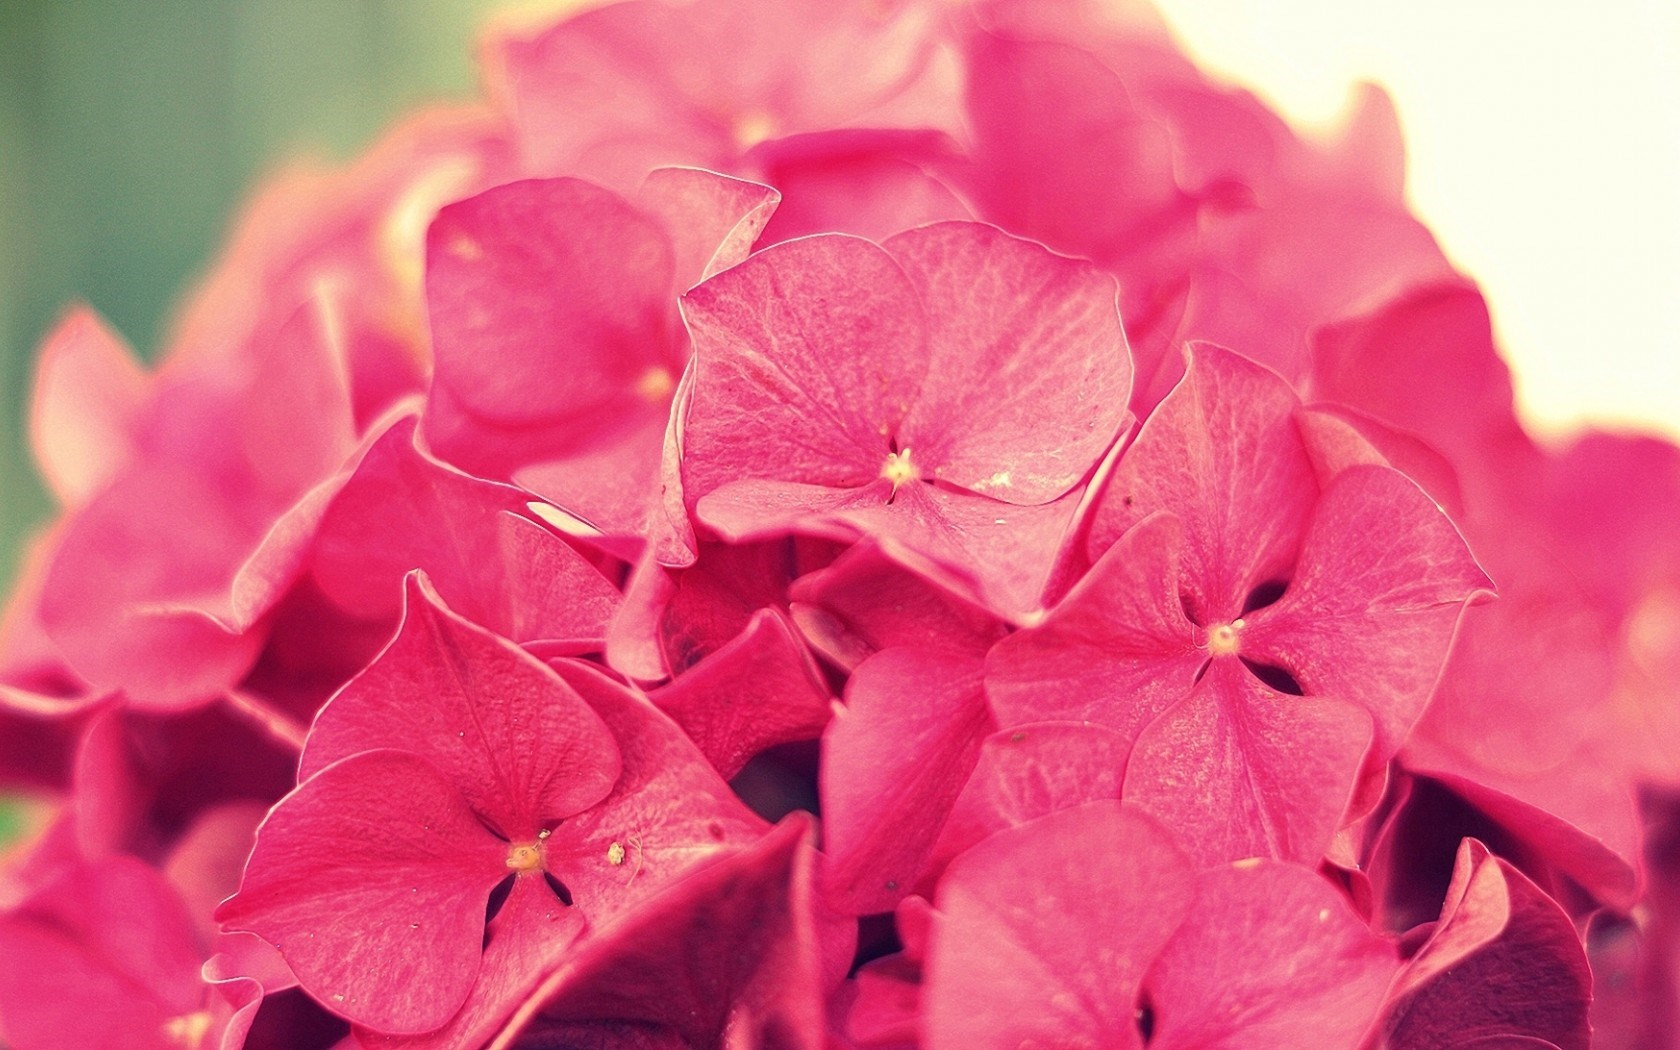 hydrangea pink flowers close up